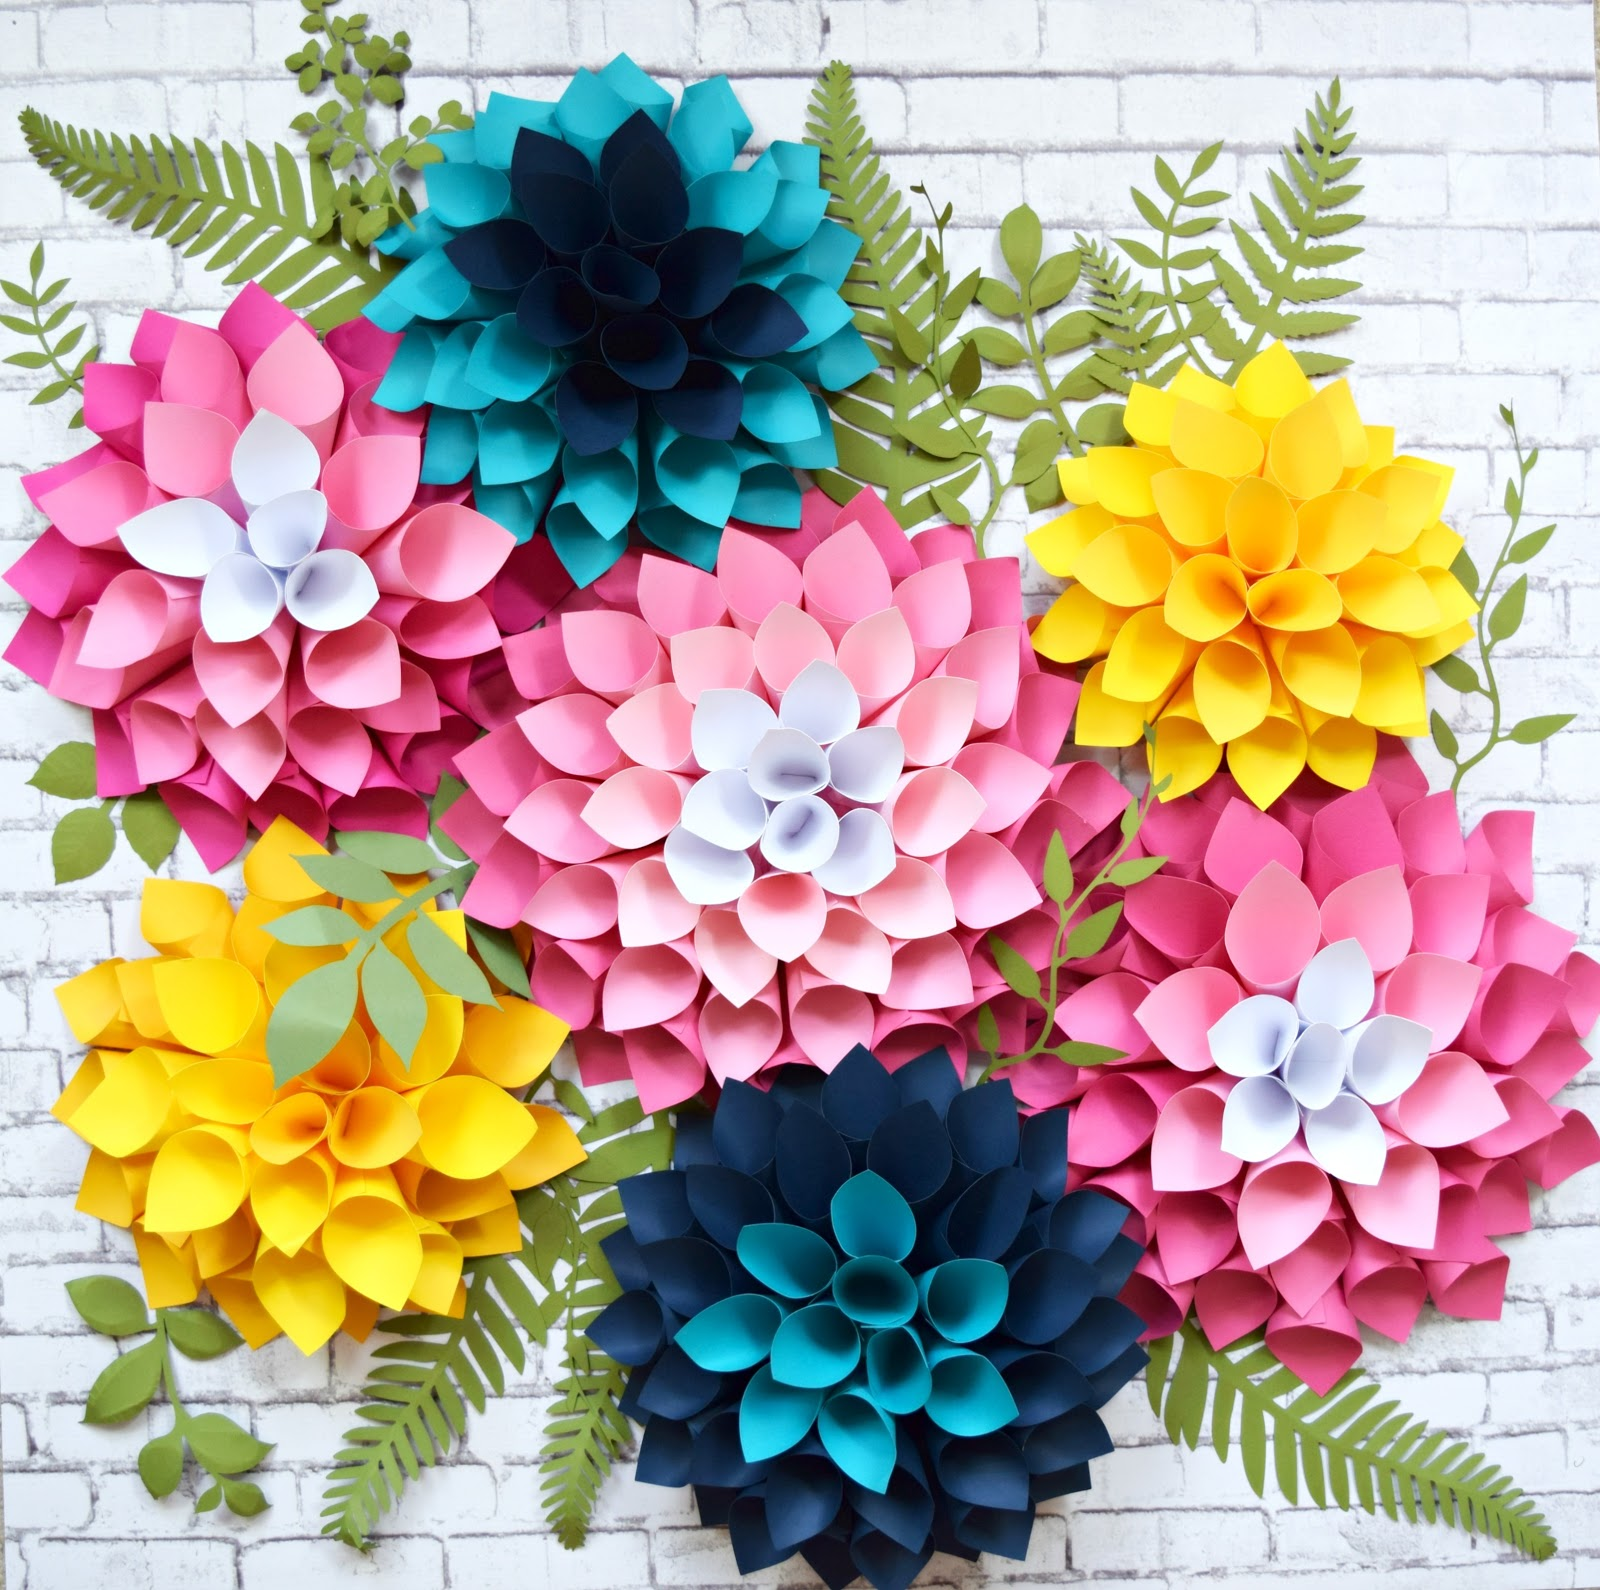 Diy giant dahlia paper flowers how to make large paper dahlias how to make giant paper dahlias paper flower templates diy giant dahlia paper flowers mightylinksfo